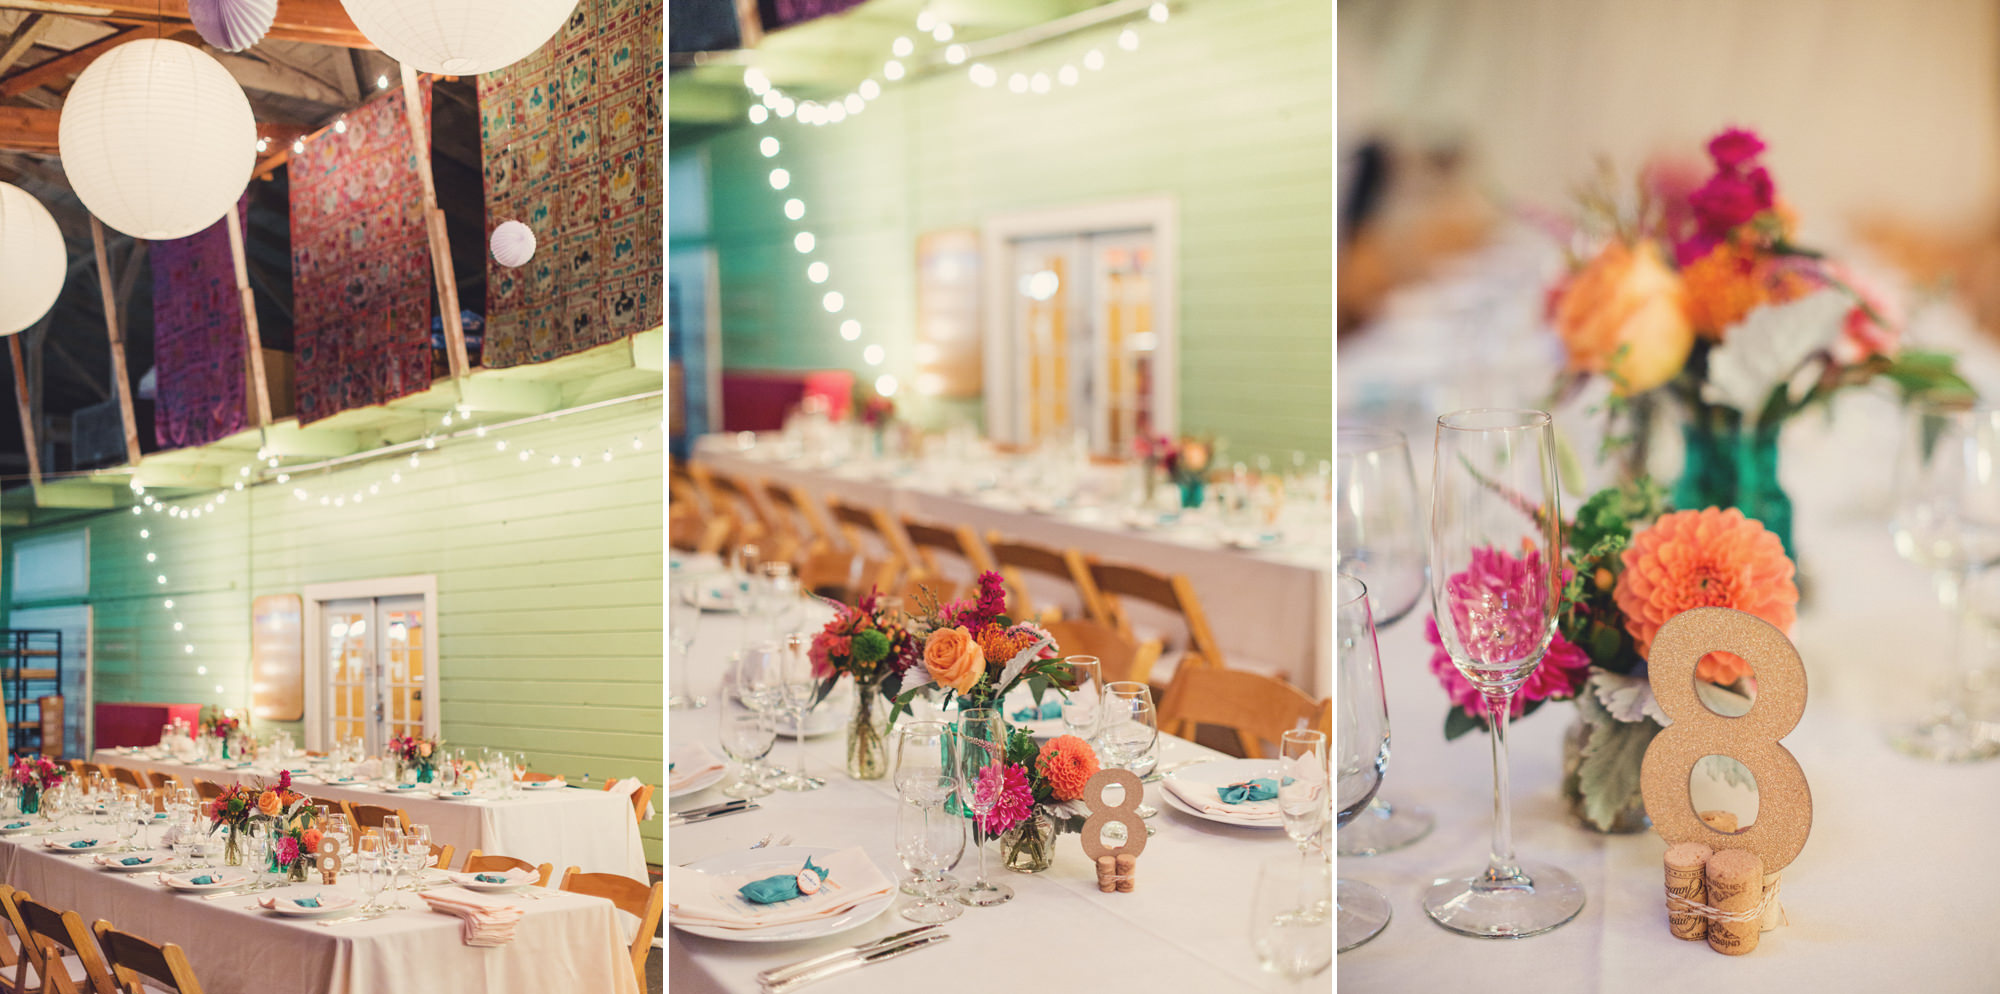 Toby's Feed Barn Wedding ©Anne-Claire Brun 123